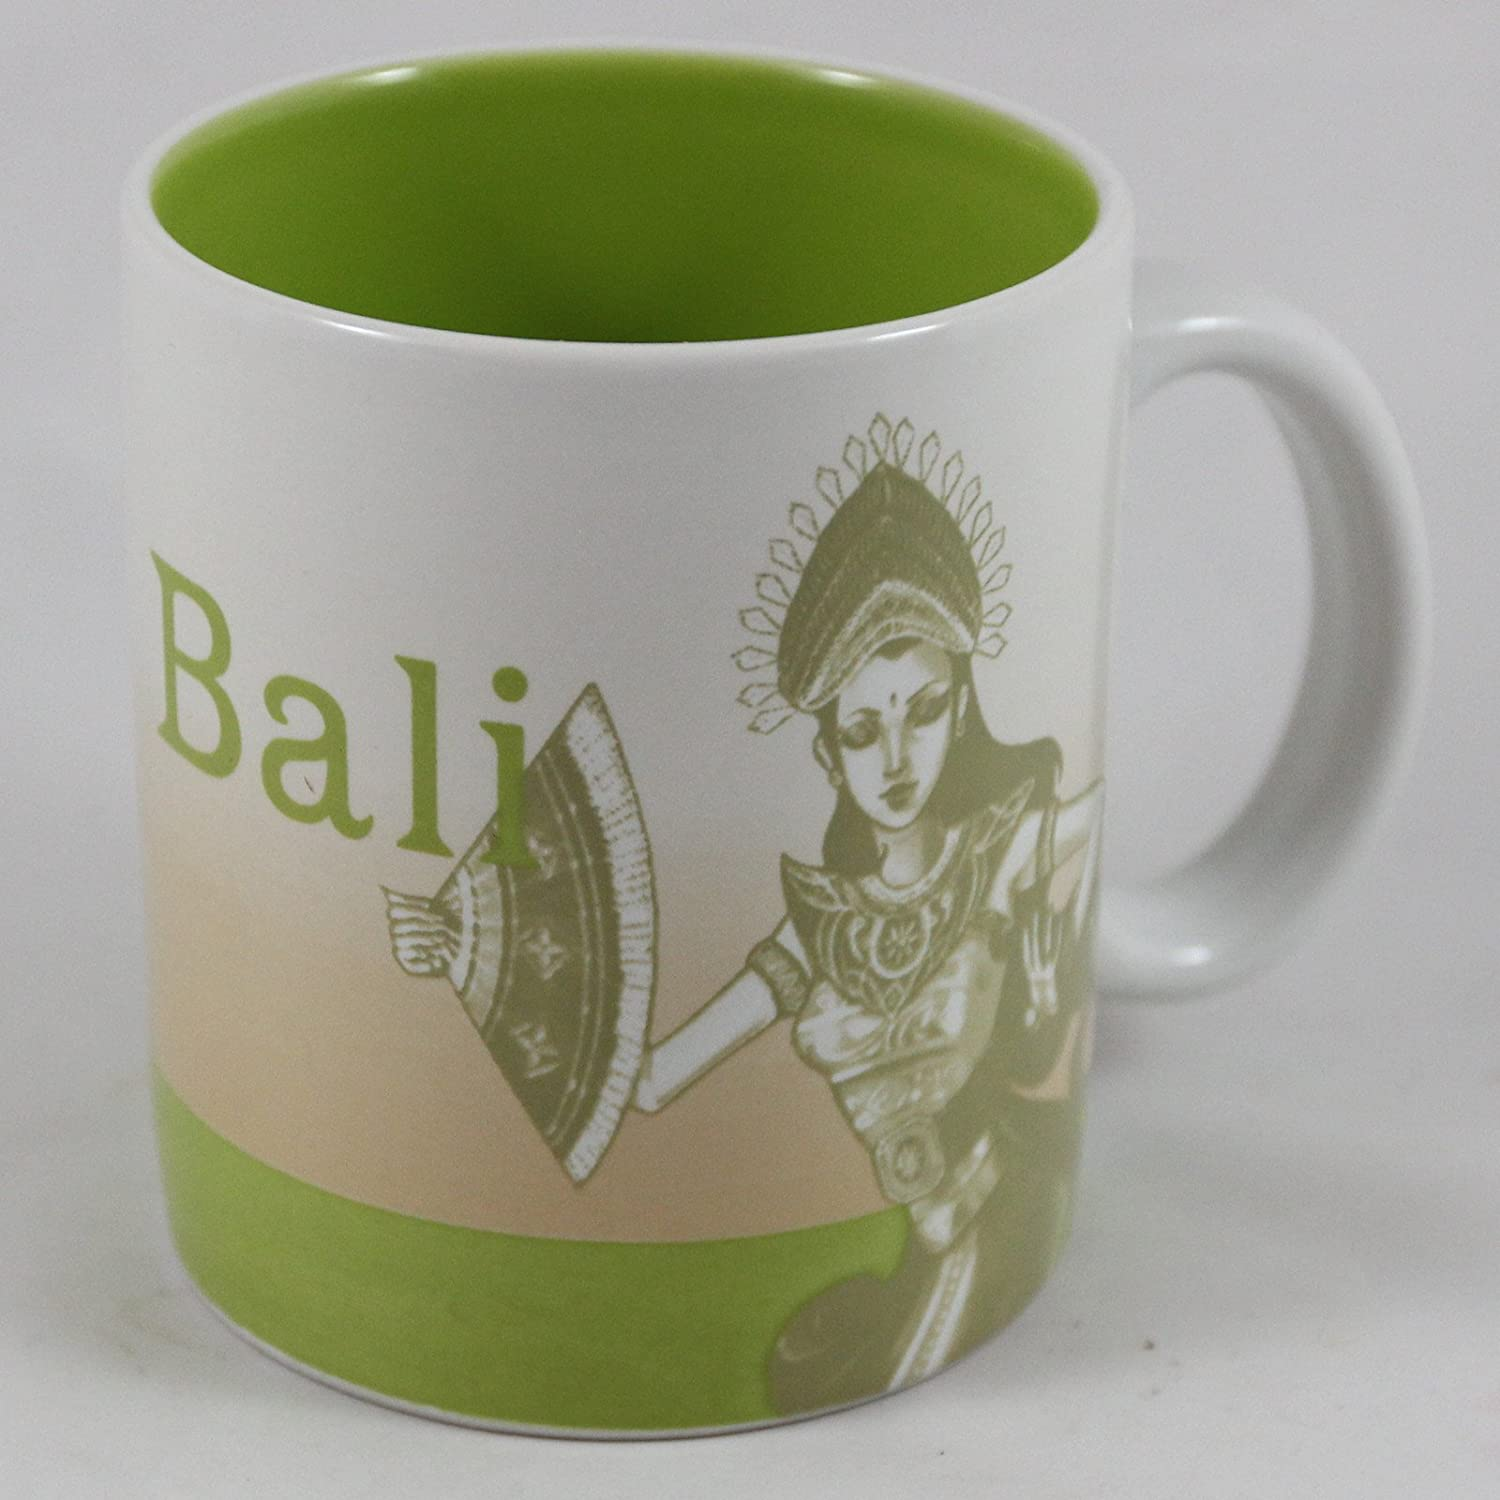 Starbucks Coffee 2011 Indonesia Dancer Series Bali Mug 16 Oz